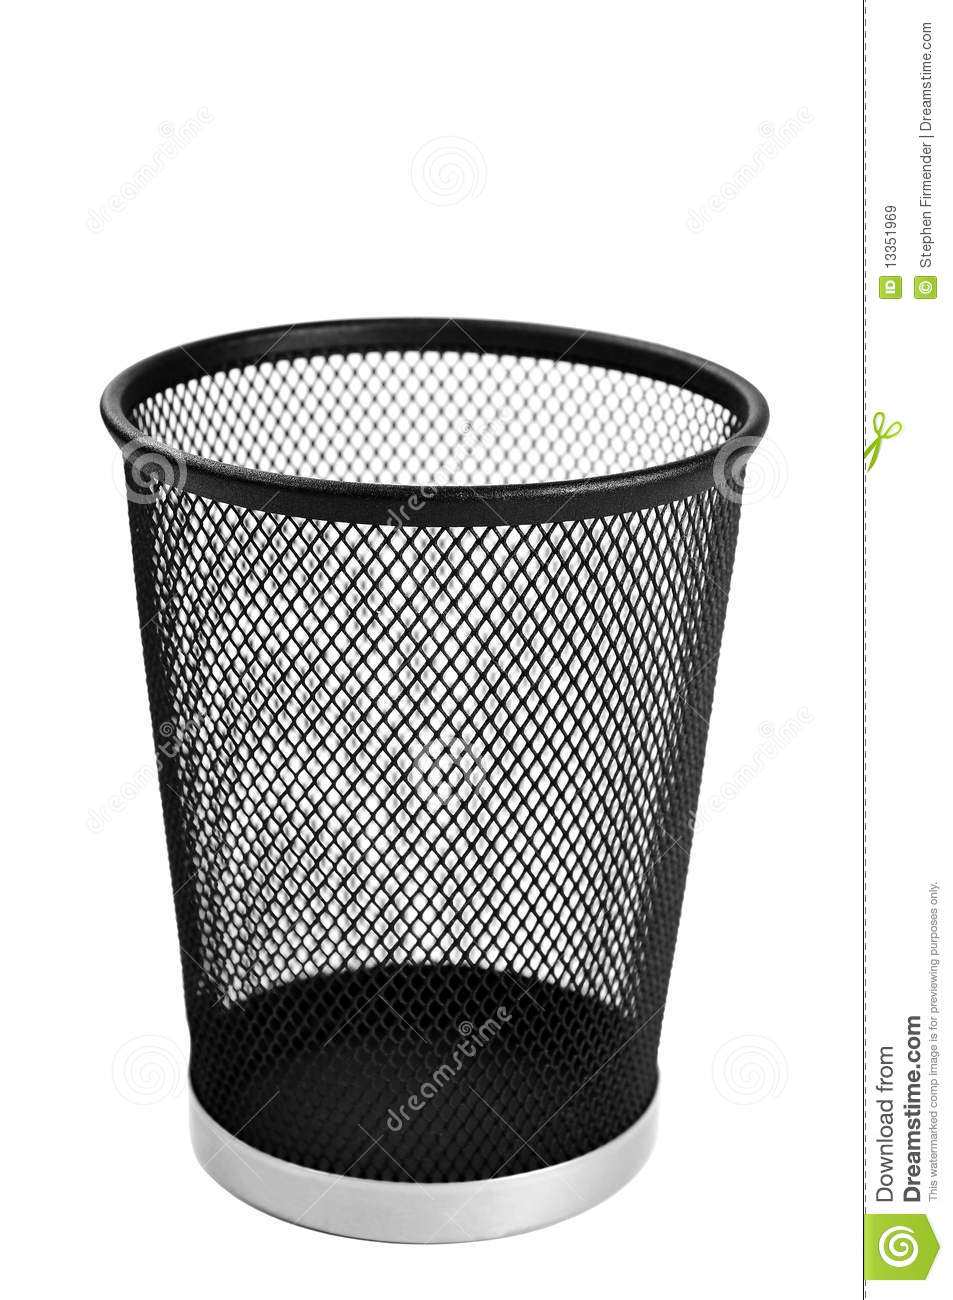 Wastepaper Basket Entrancing Waste Paper Basket Royalty Free Stock Images  Image 13351969 Design Ideas